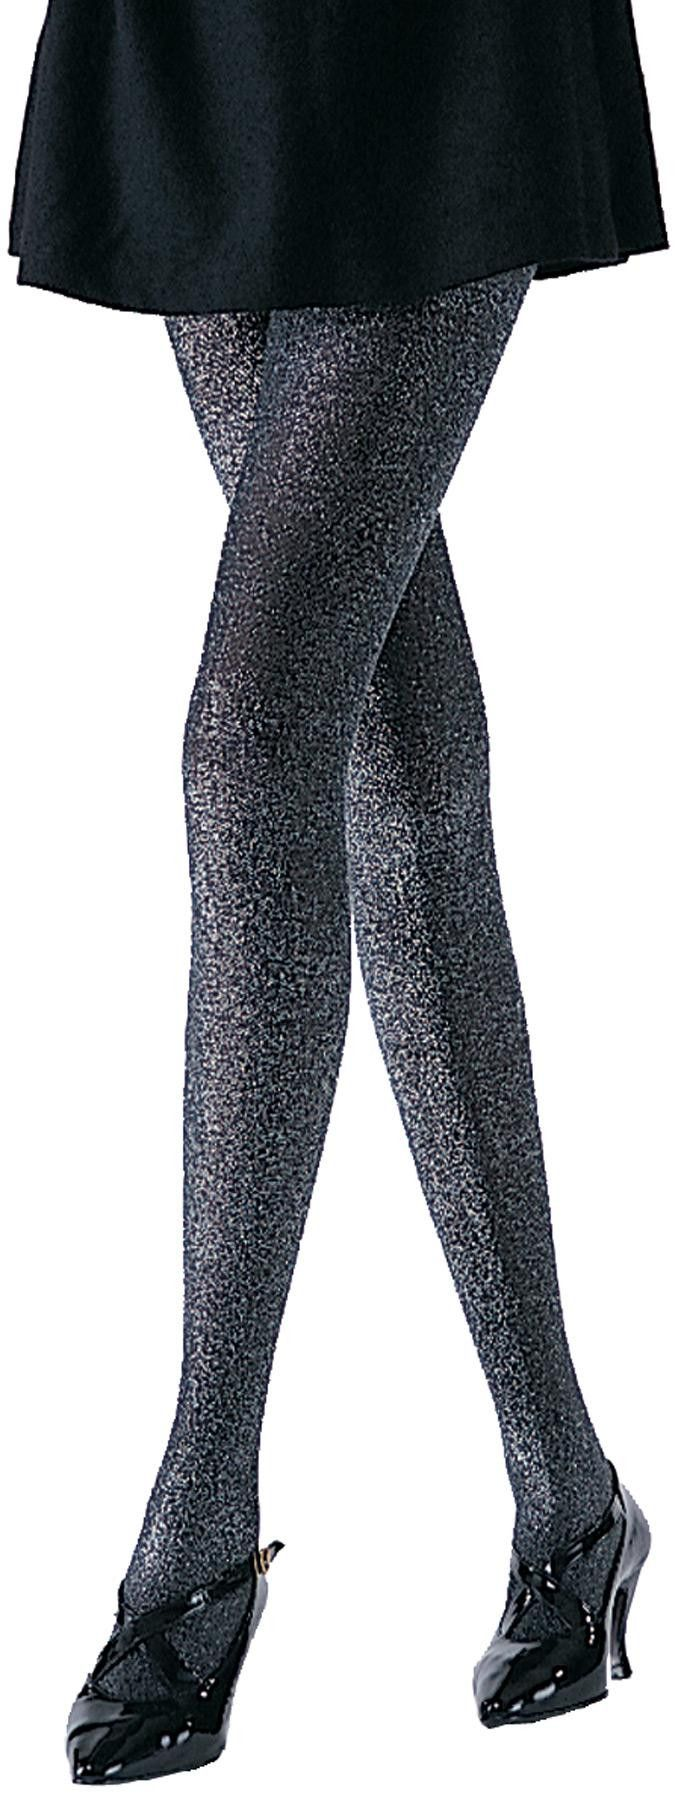 Glittery, shimmery lurex style tights. One size fits most. Box Dimensions (in Inches) Length : 7.00 Width : 7.00 Height : 7.00